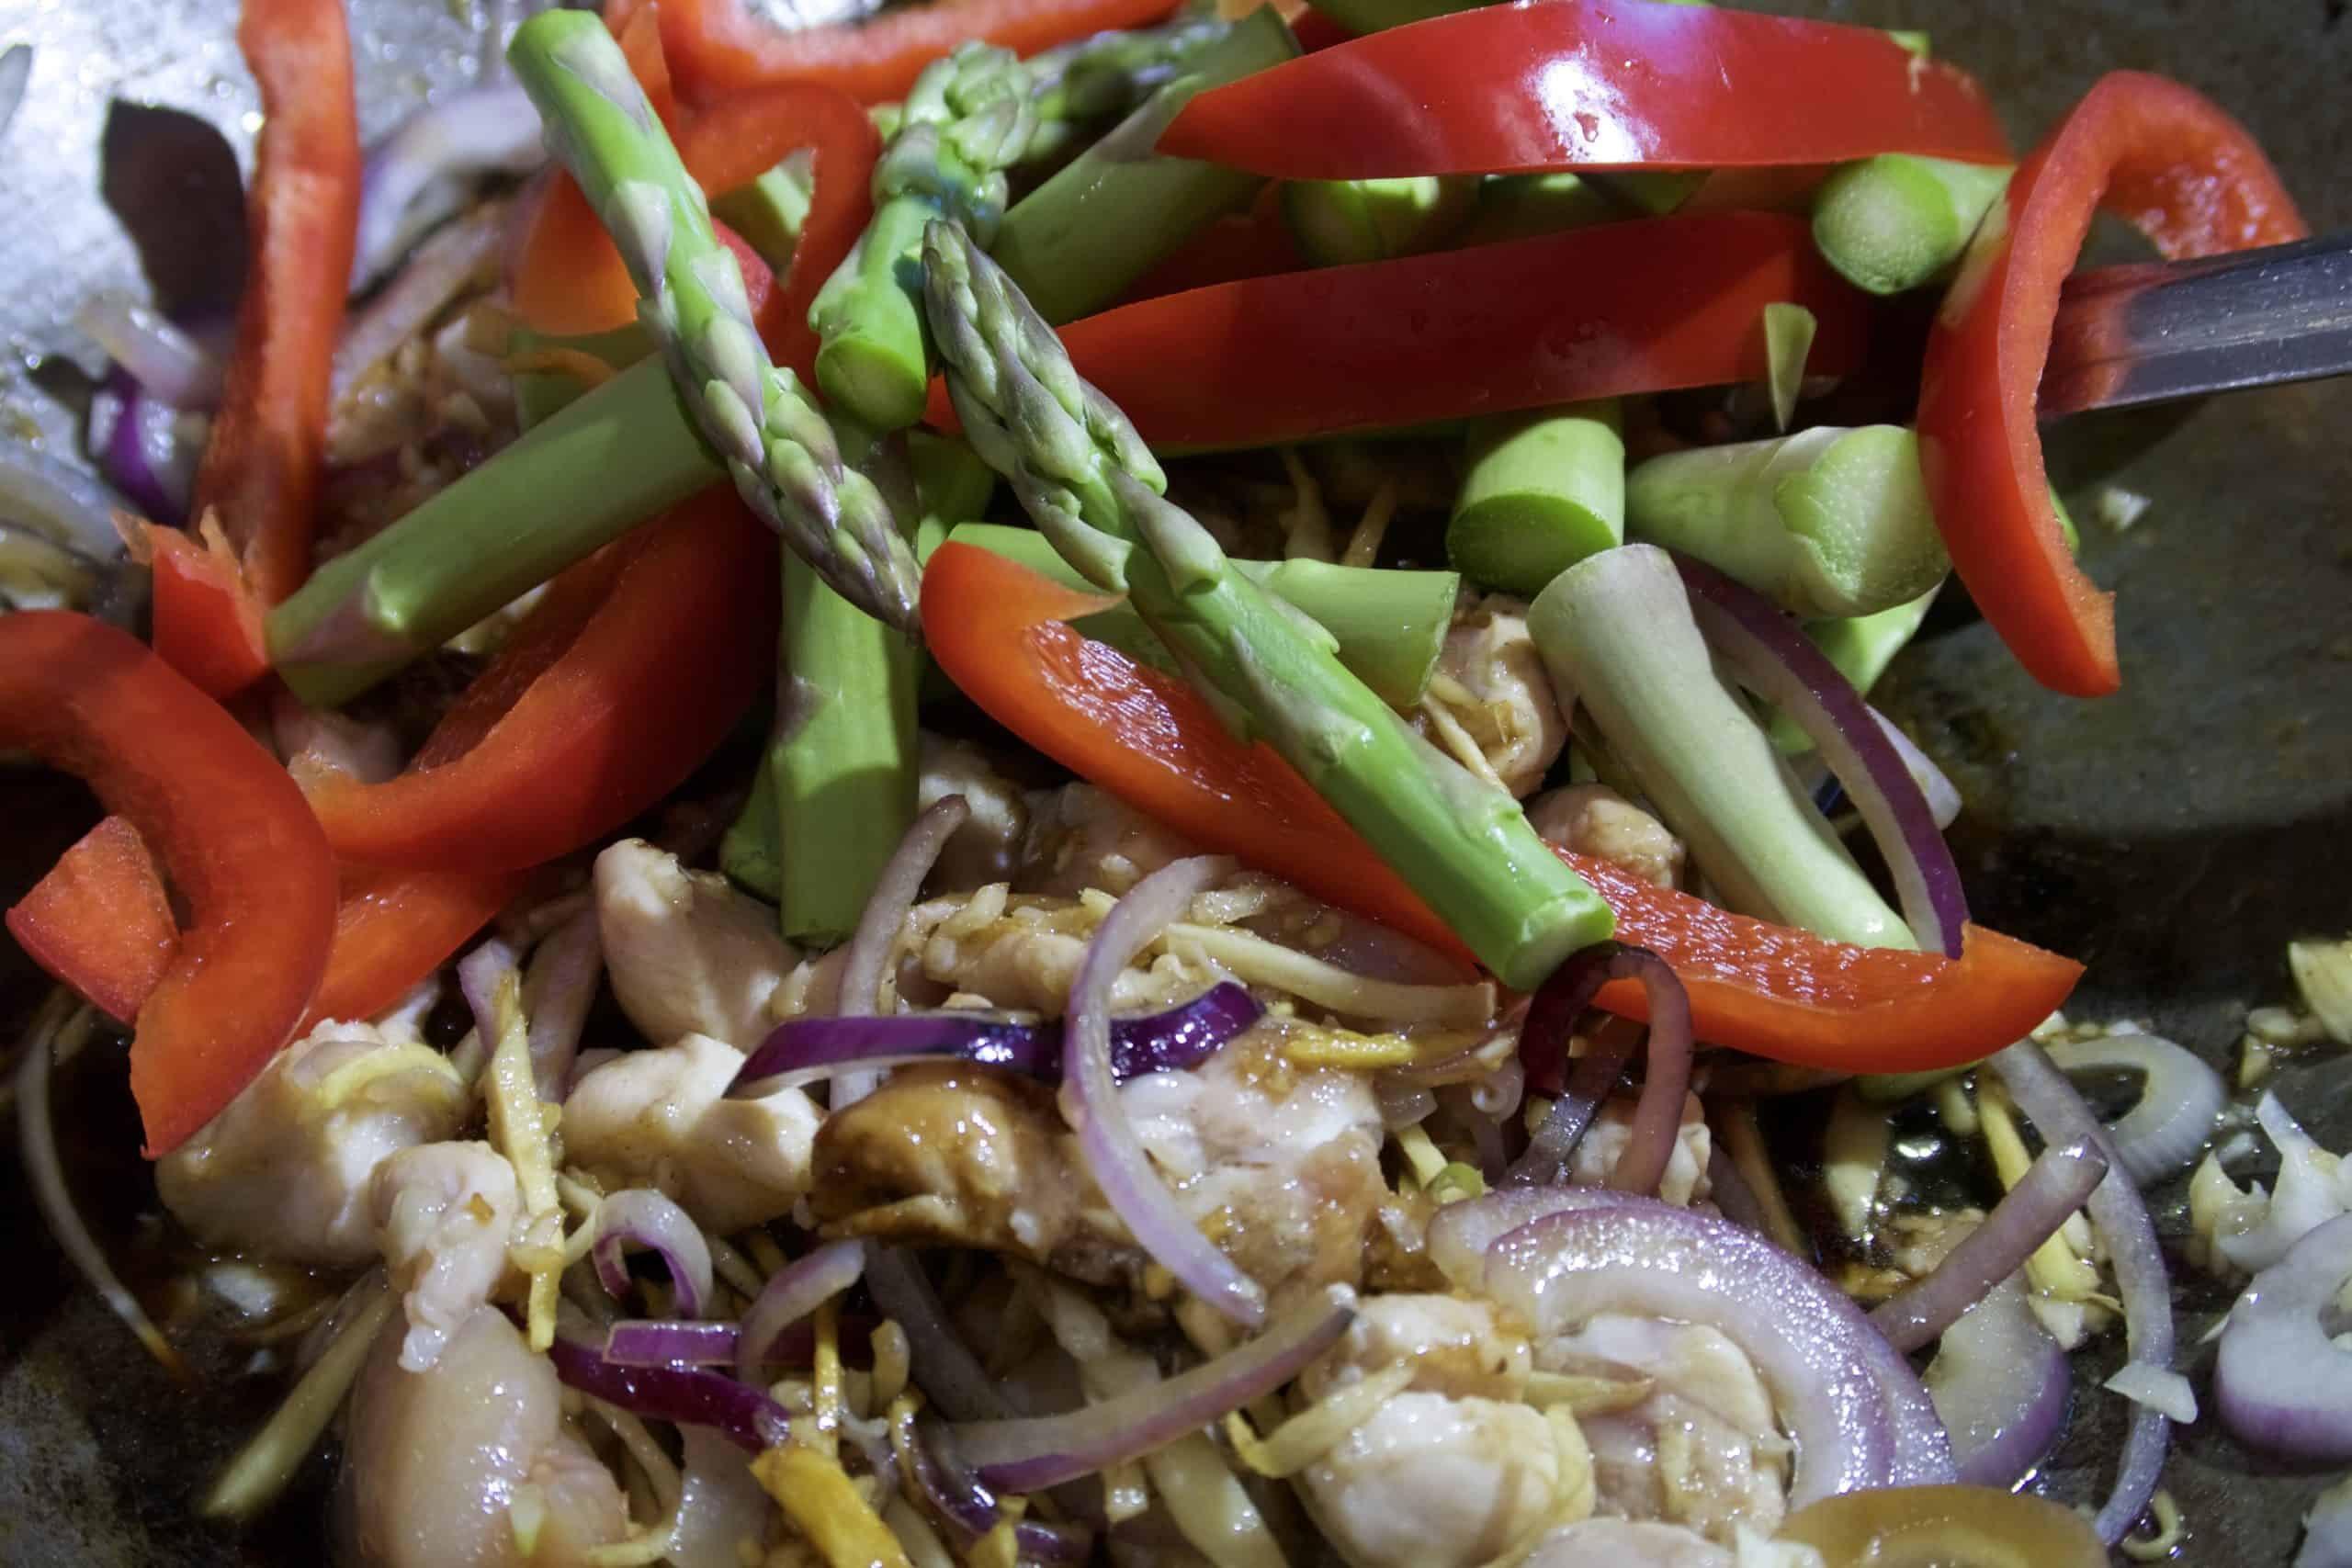 chicken stir fry with asparagus and ginger adding asparagus and capsicum to stir fry in wok